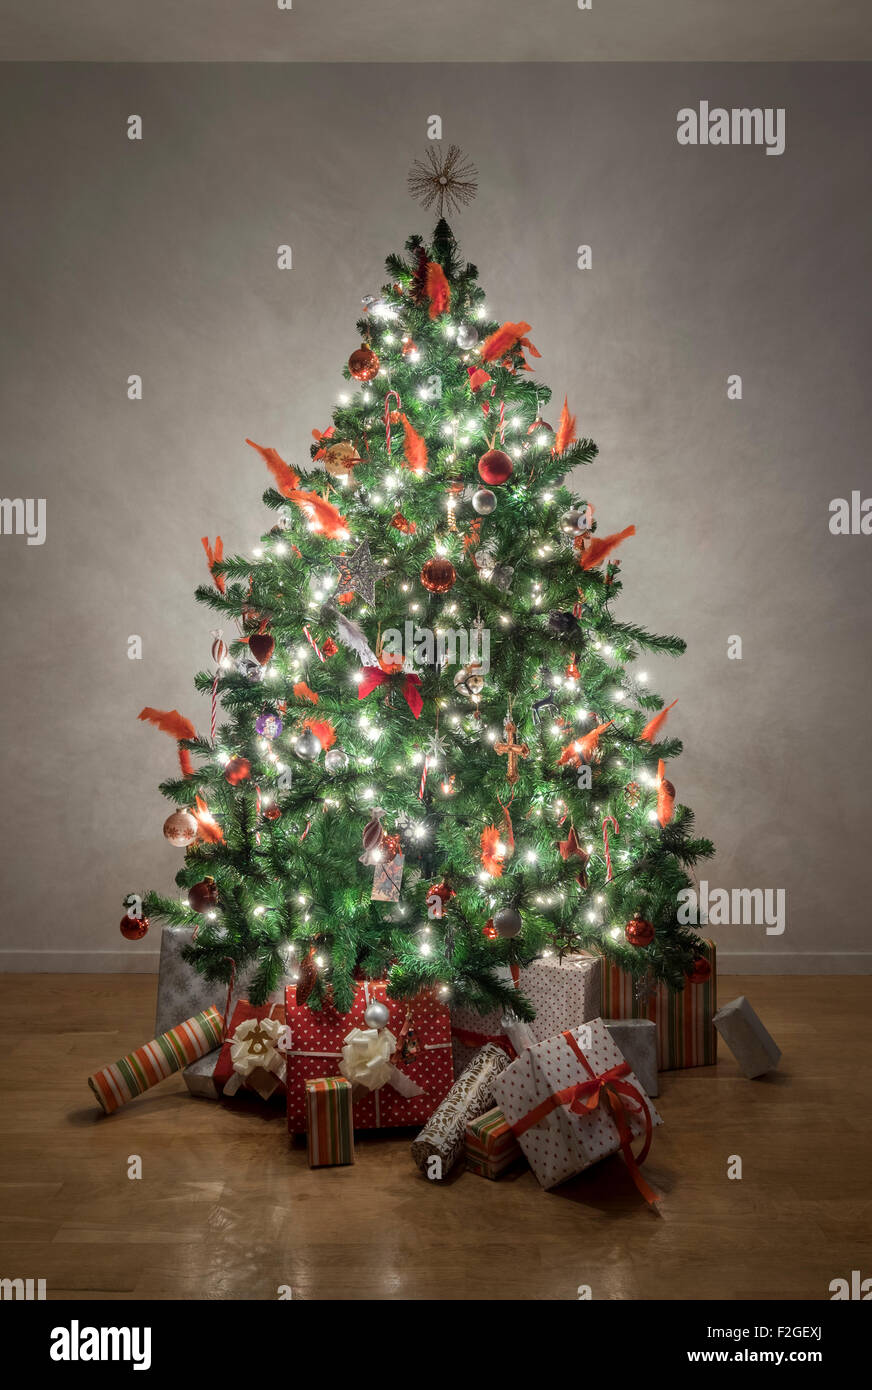 Beautiful illuminated christmas tree in a living room - Stock Image